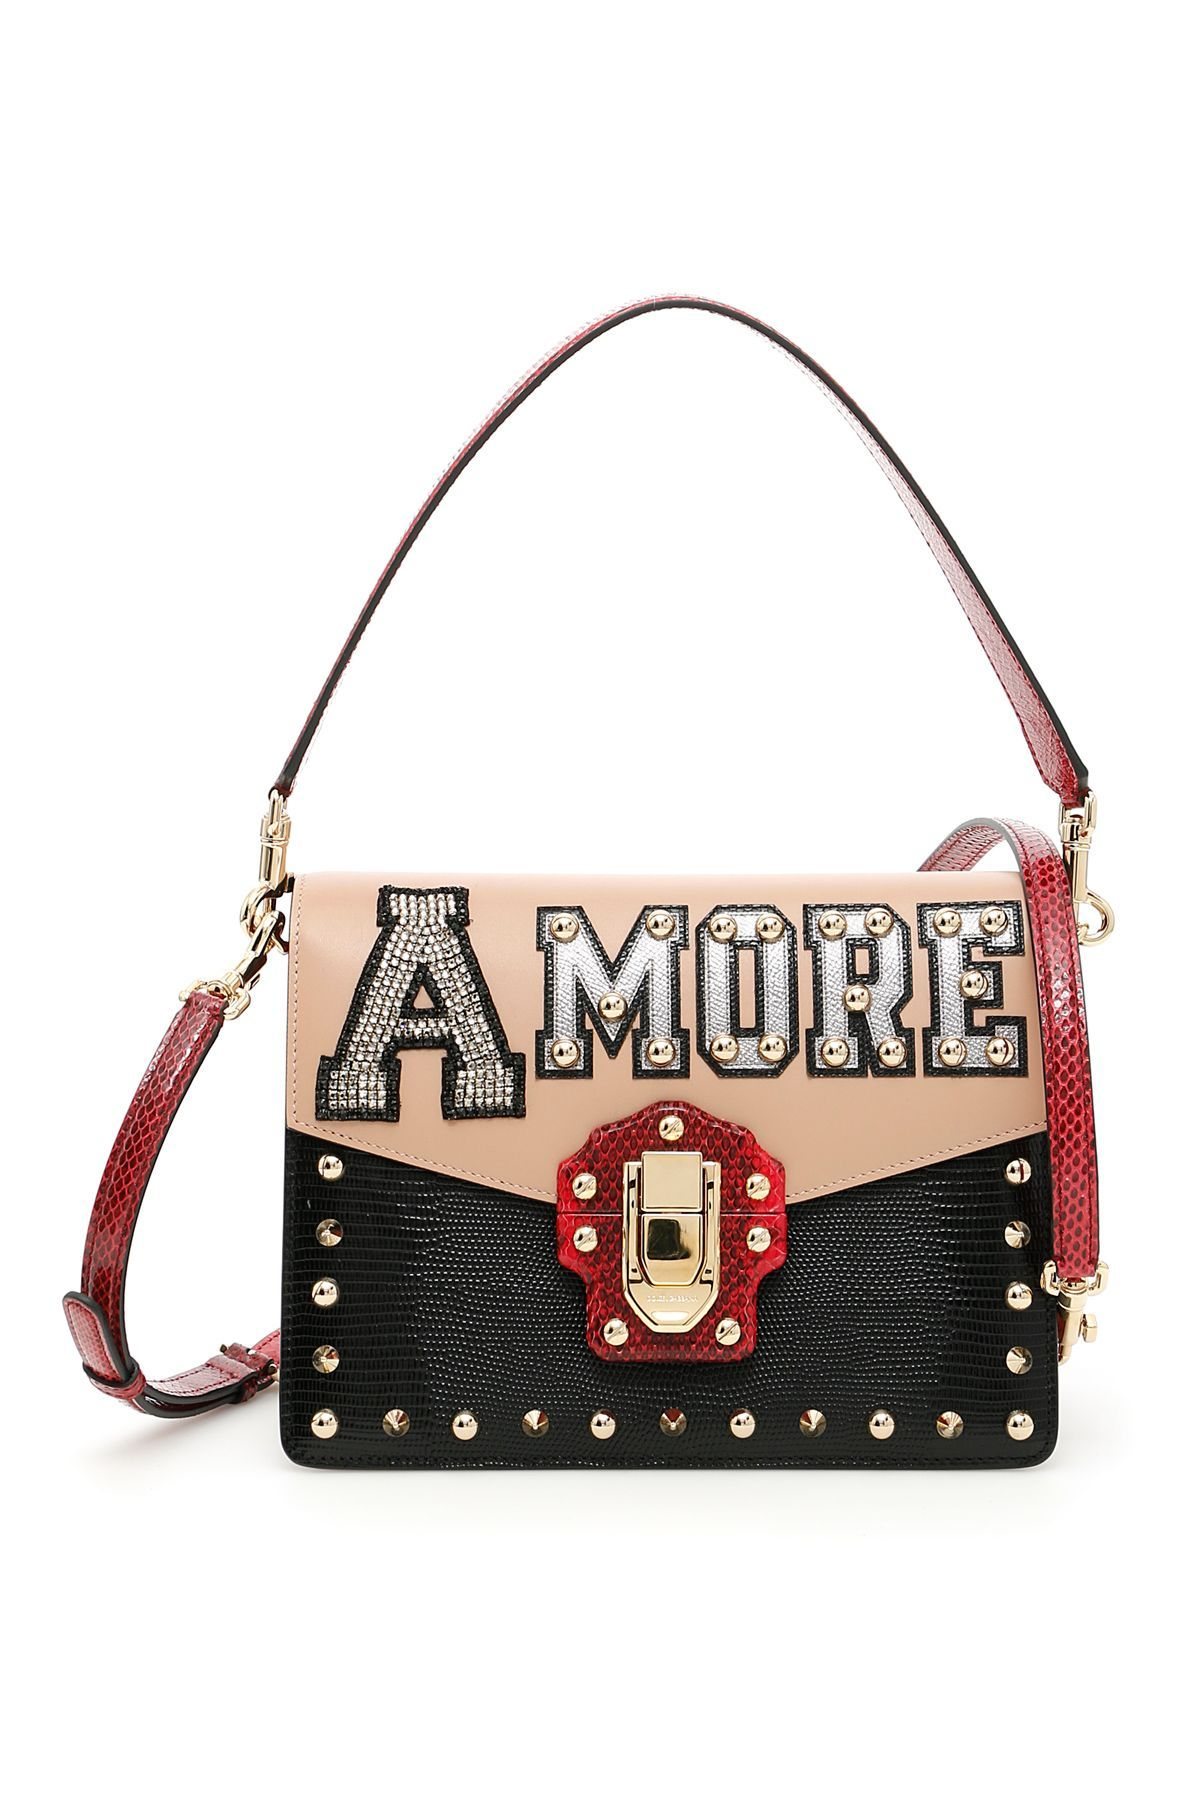 DOLCE   GABBANA .  dolcegabbana  bags  shoulder bags  hand bags  lining   leather  crystal   74f016c76d